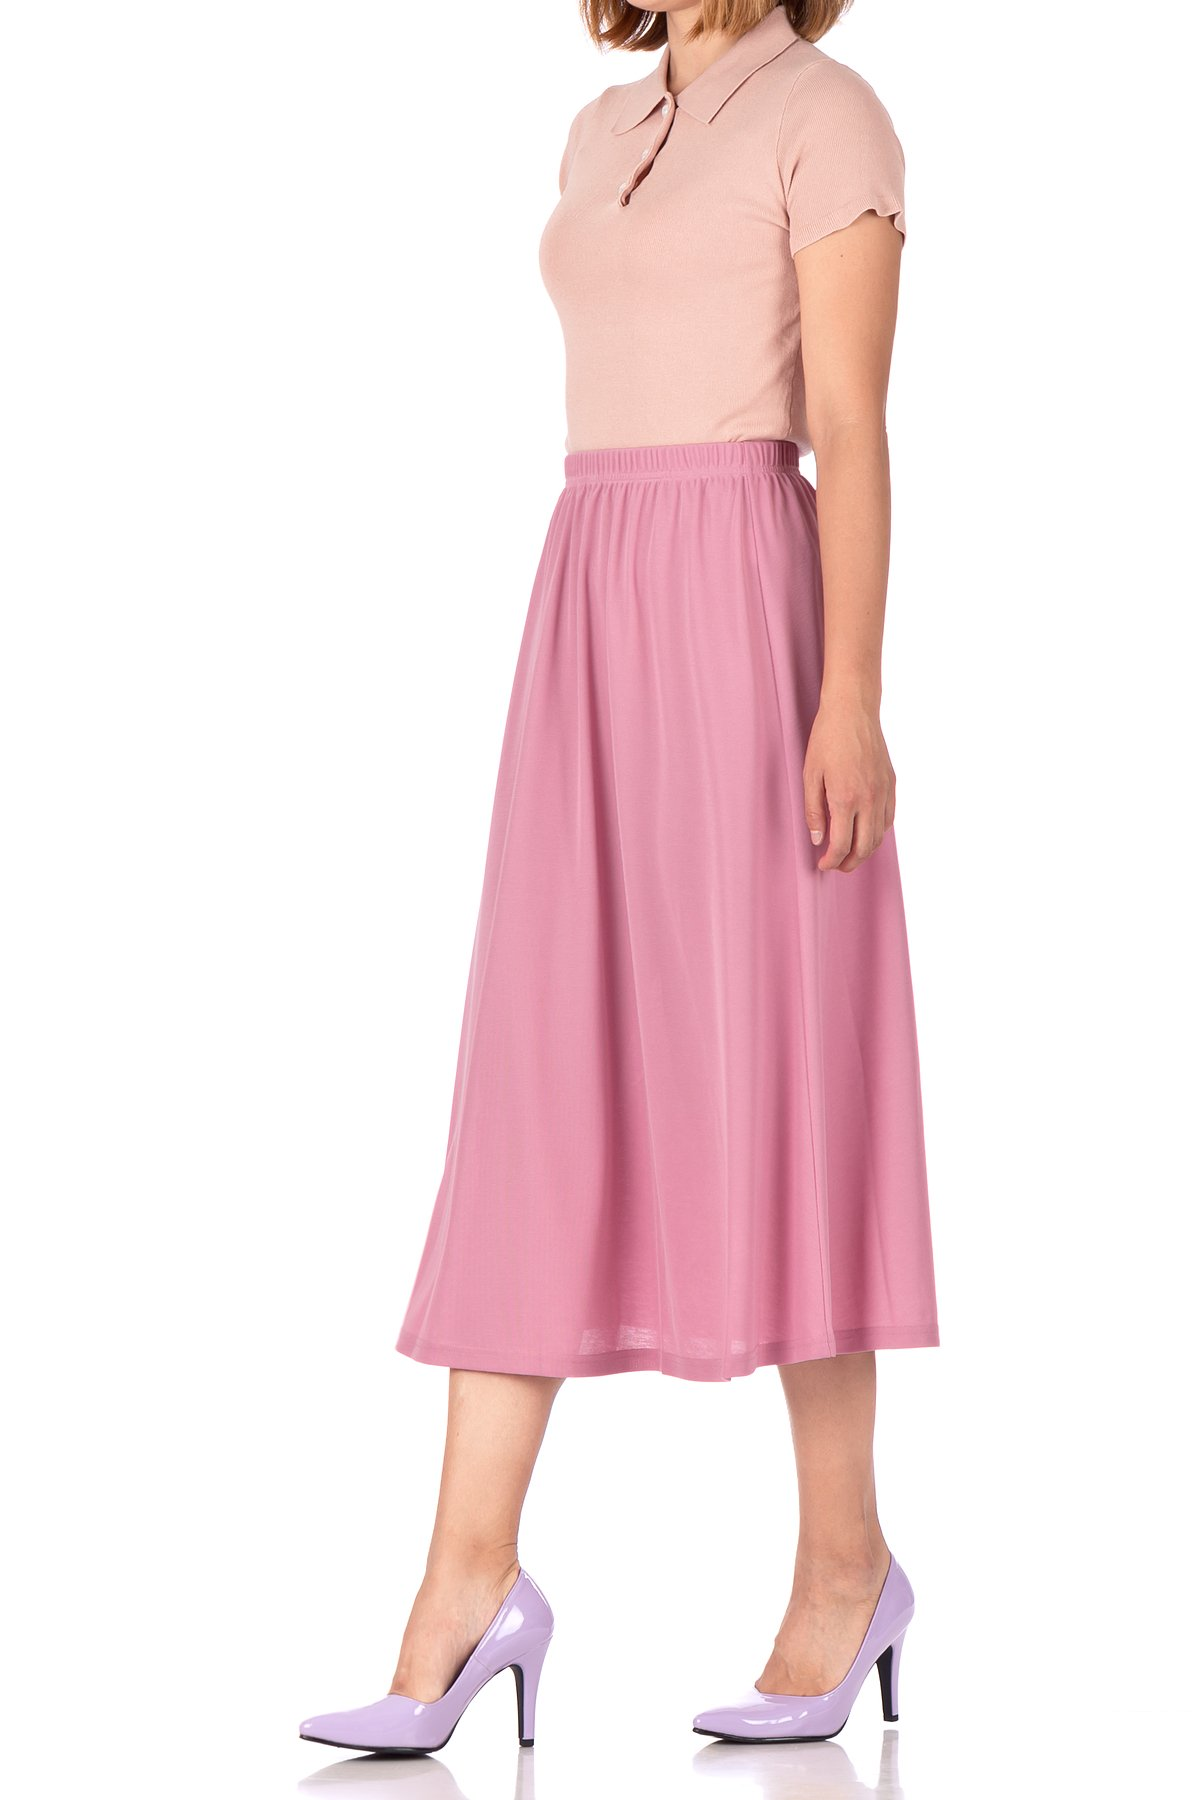 Brilliant Elastic Waist Full Flared Long Skirt Flamingo 05 1